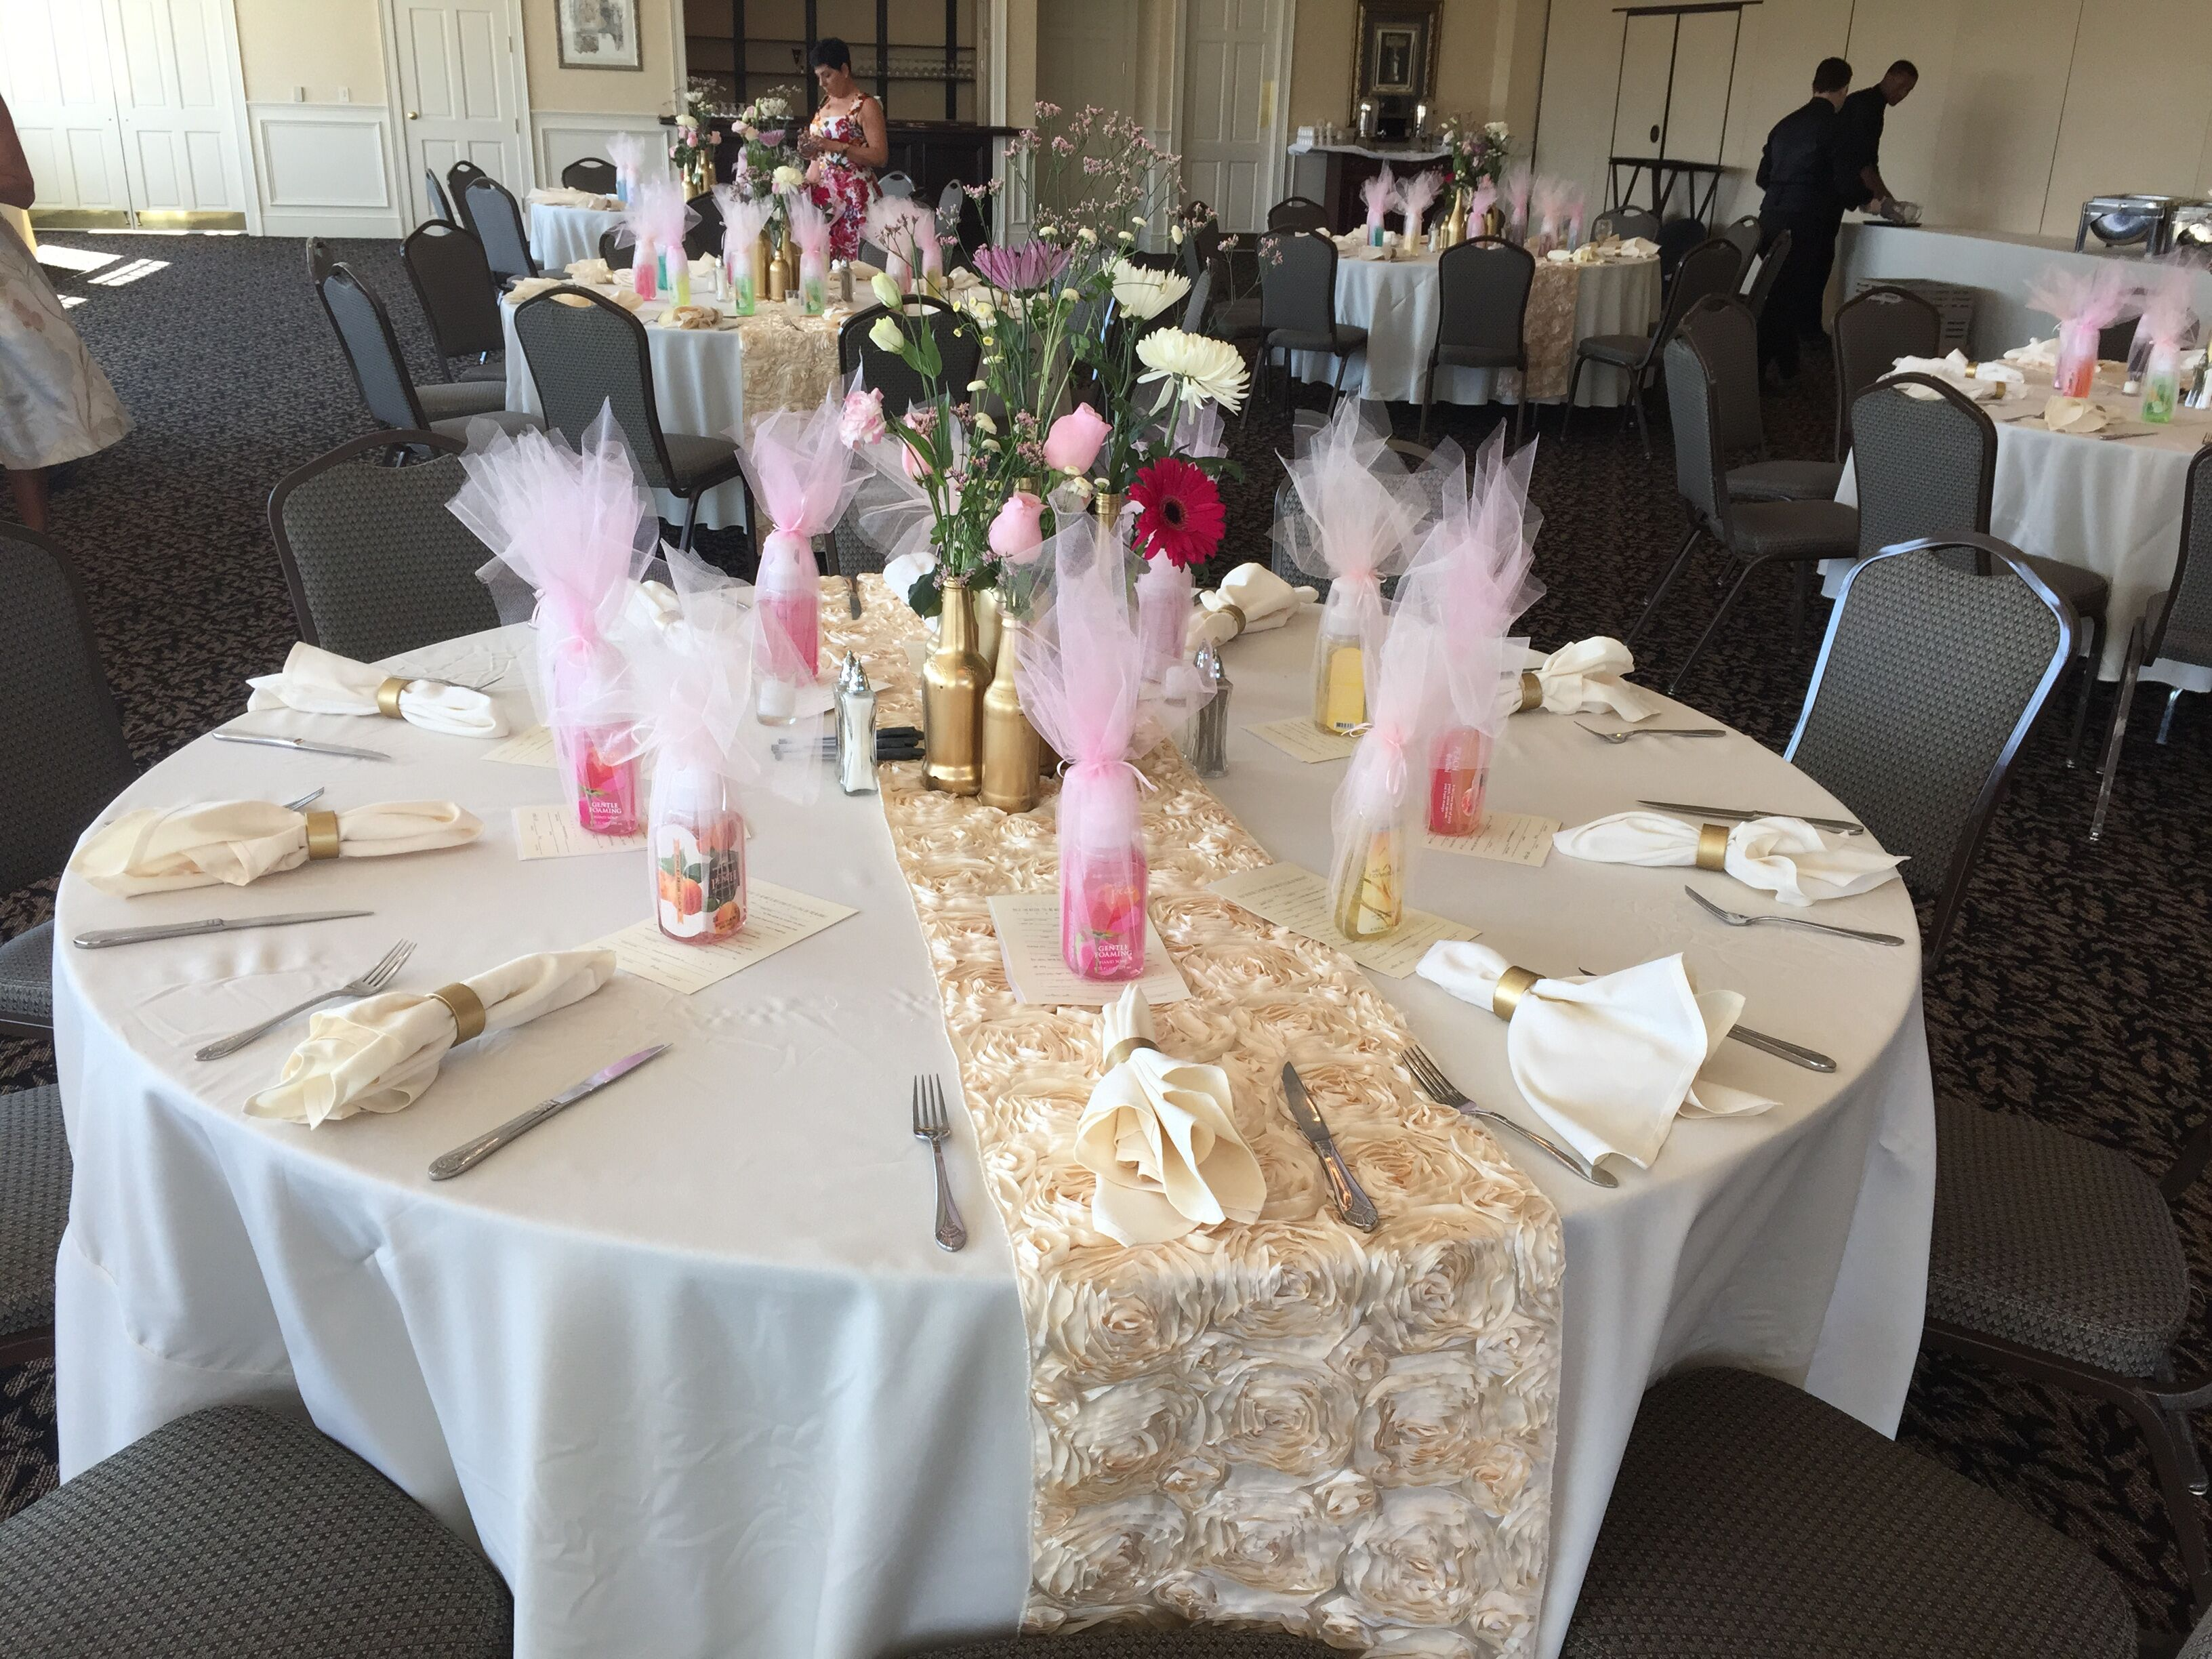 Rehearsal Dinner Bridal Showers In Grand Blanc Mi The Knot